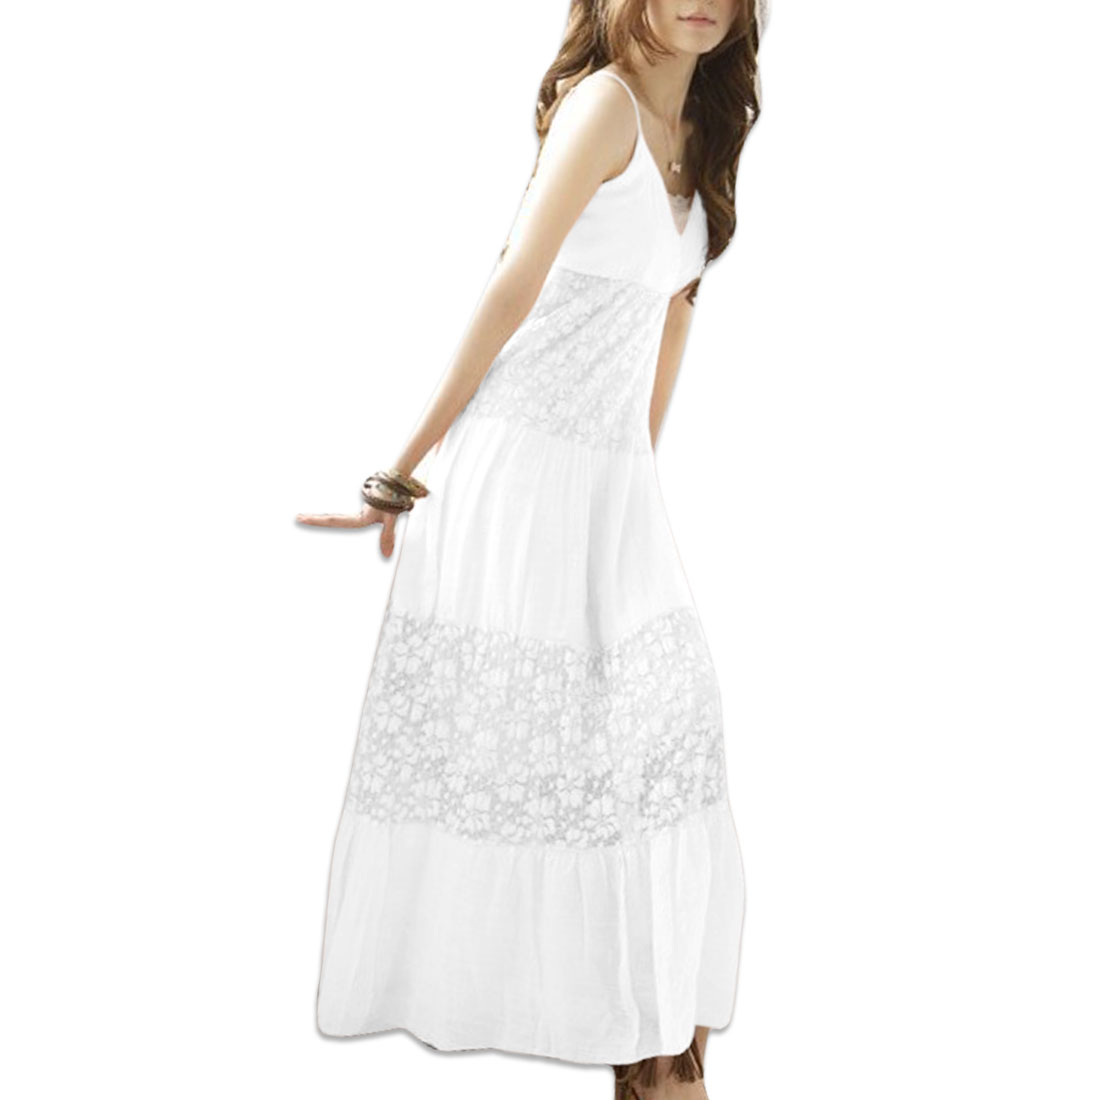 Women Self Tie String Stretchy Full Length Fashion Dress White XS